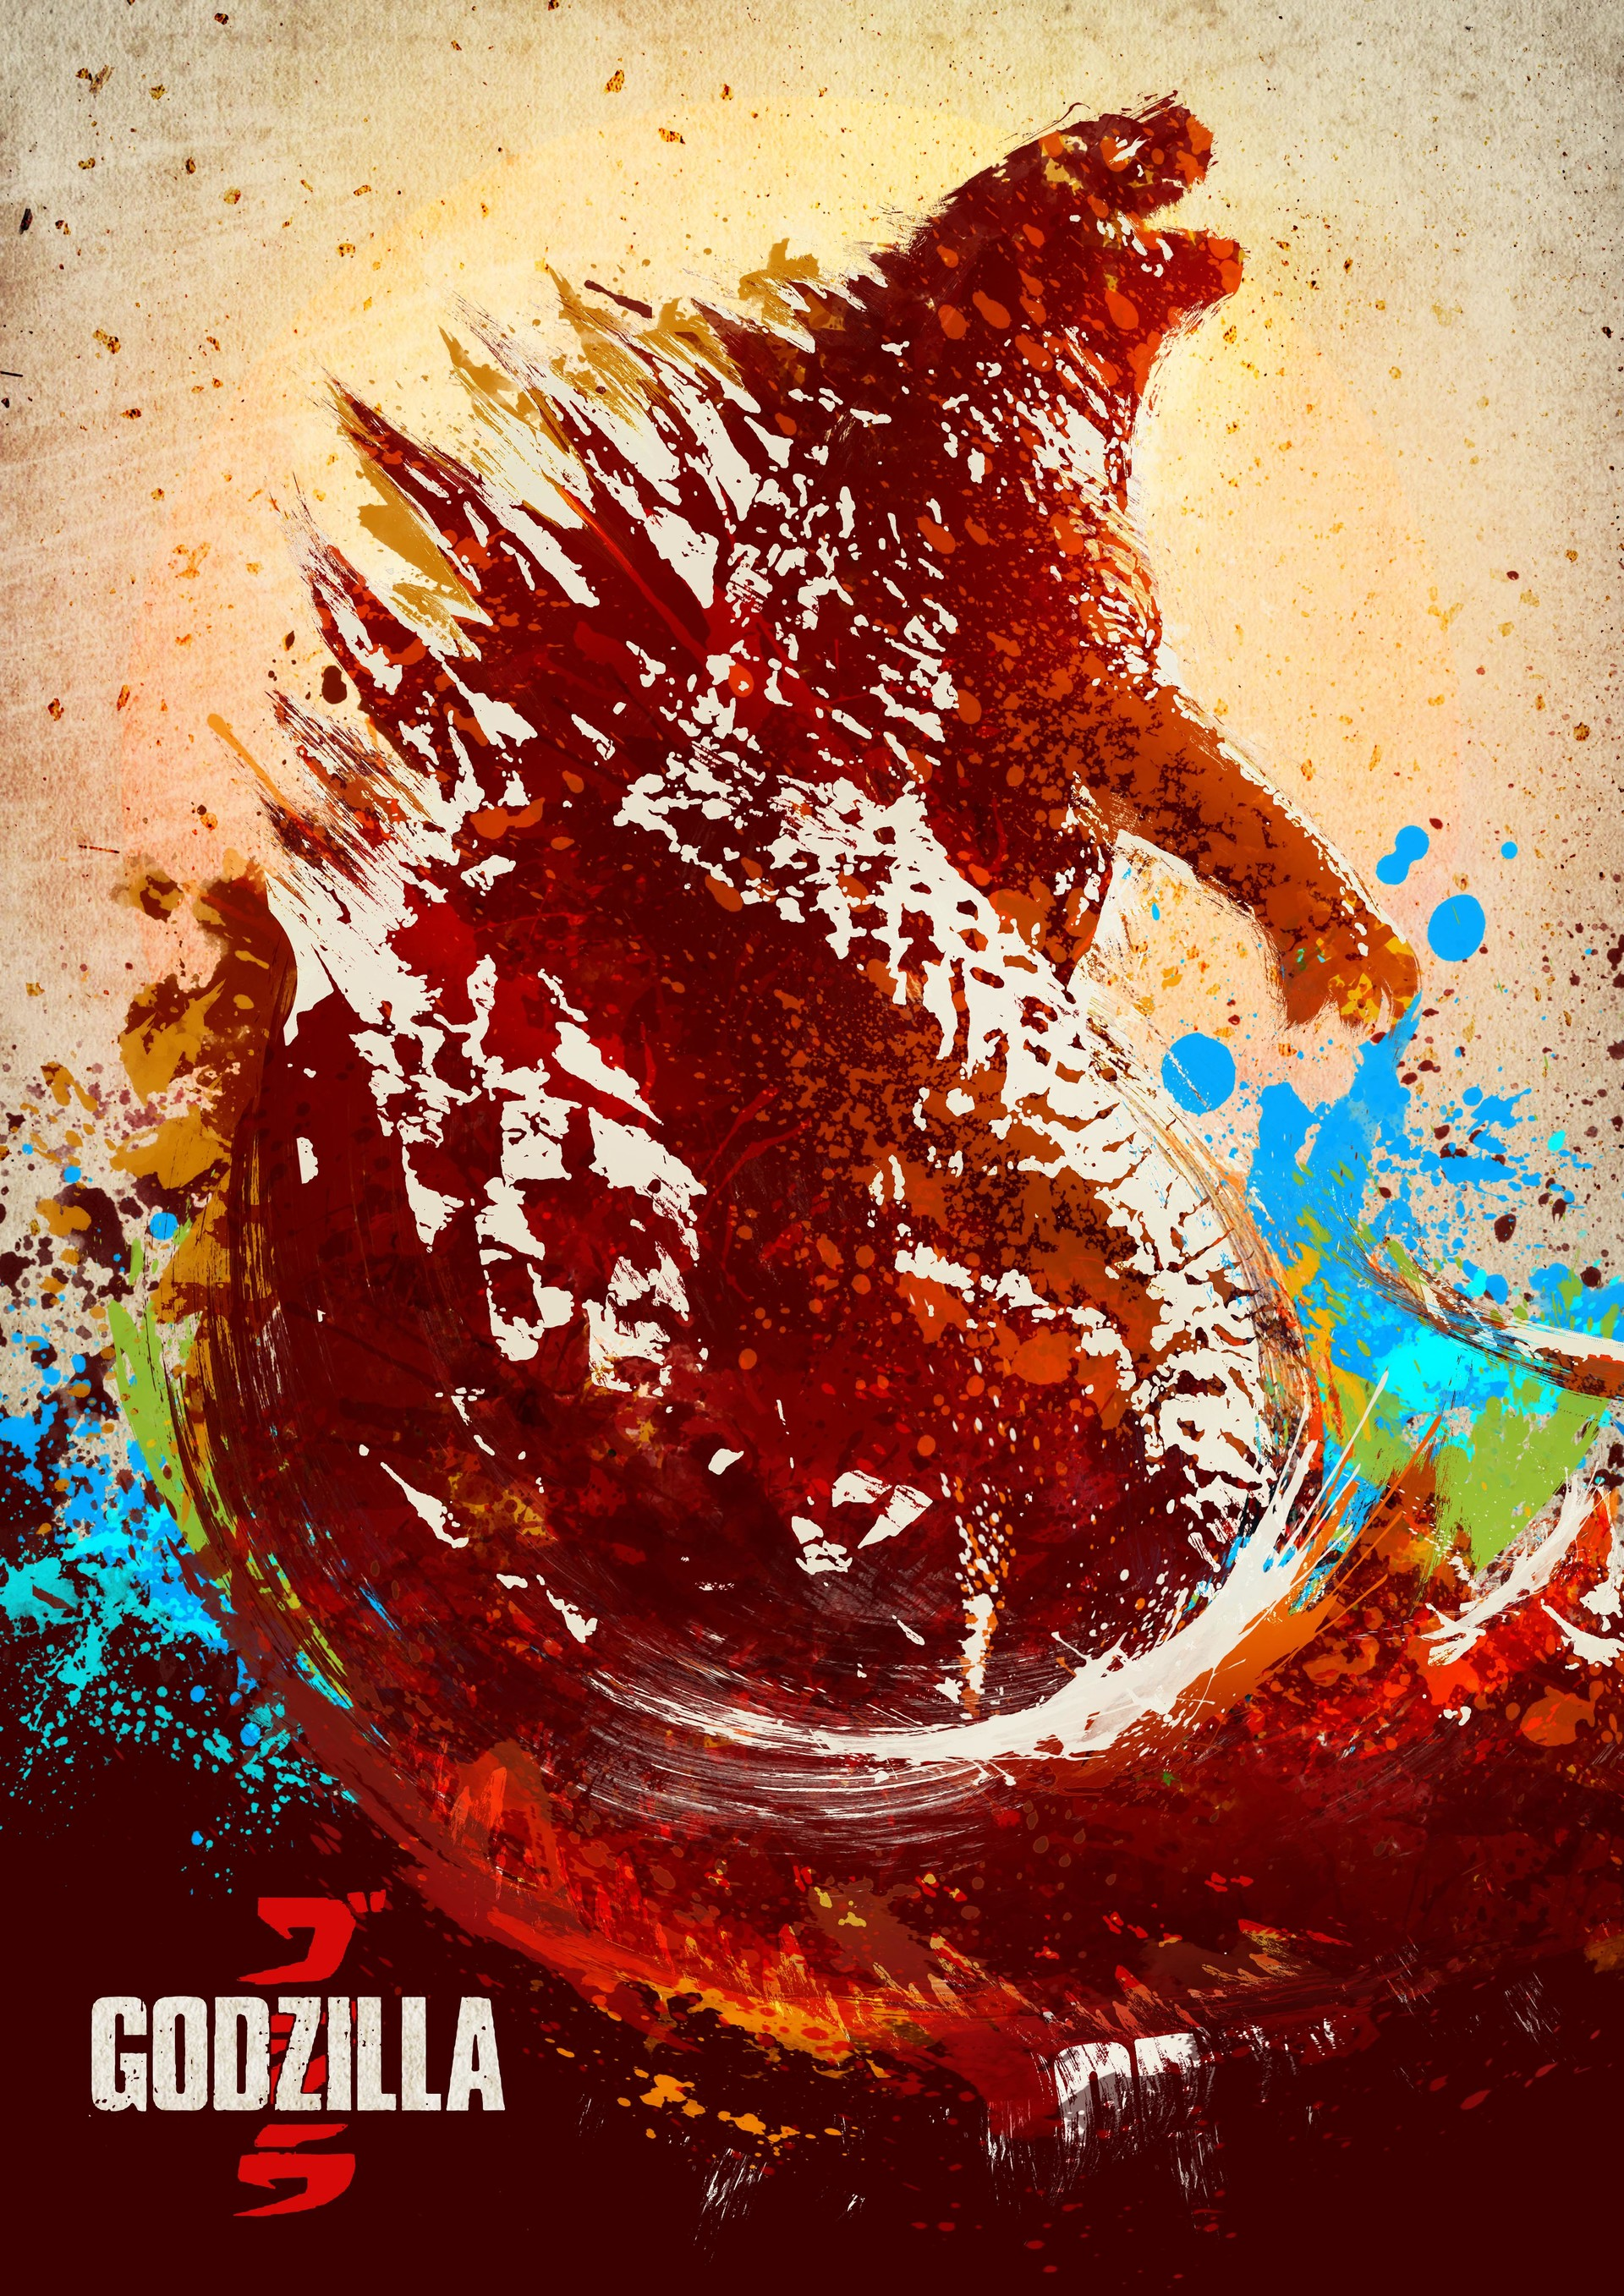 Godzilla Fan Art Contest Indonesia